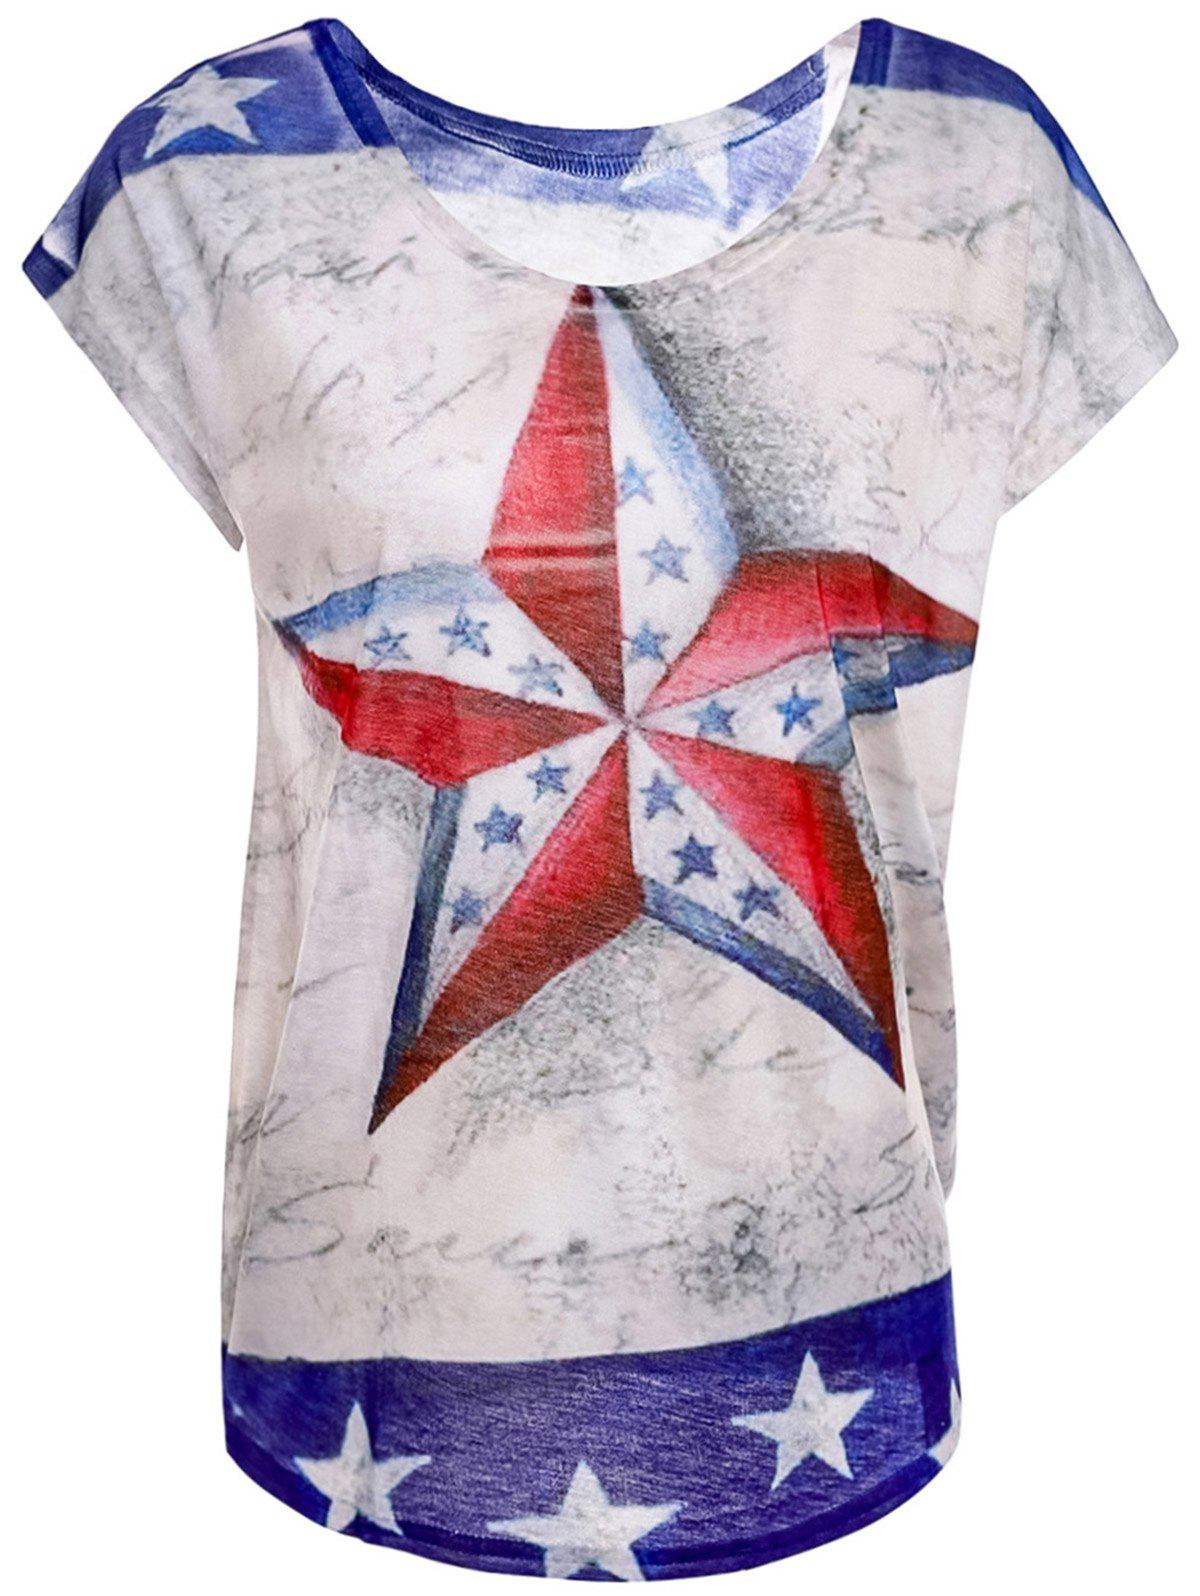 Casual Women's Scoop Neck Star Print Short Sleeve T-Shirt - ONE SIZE(FIT SIZE XS TO M) WHITE